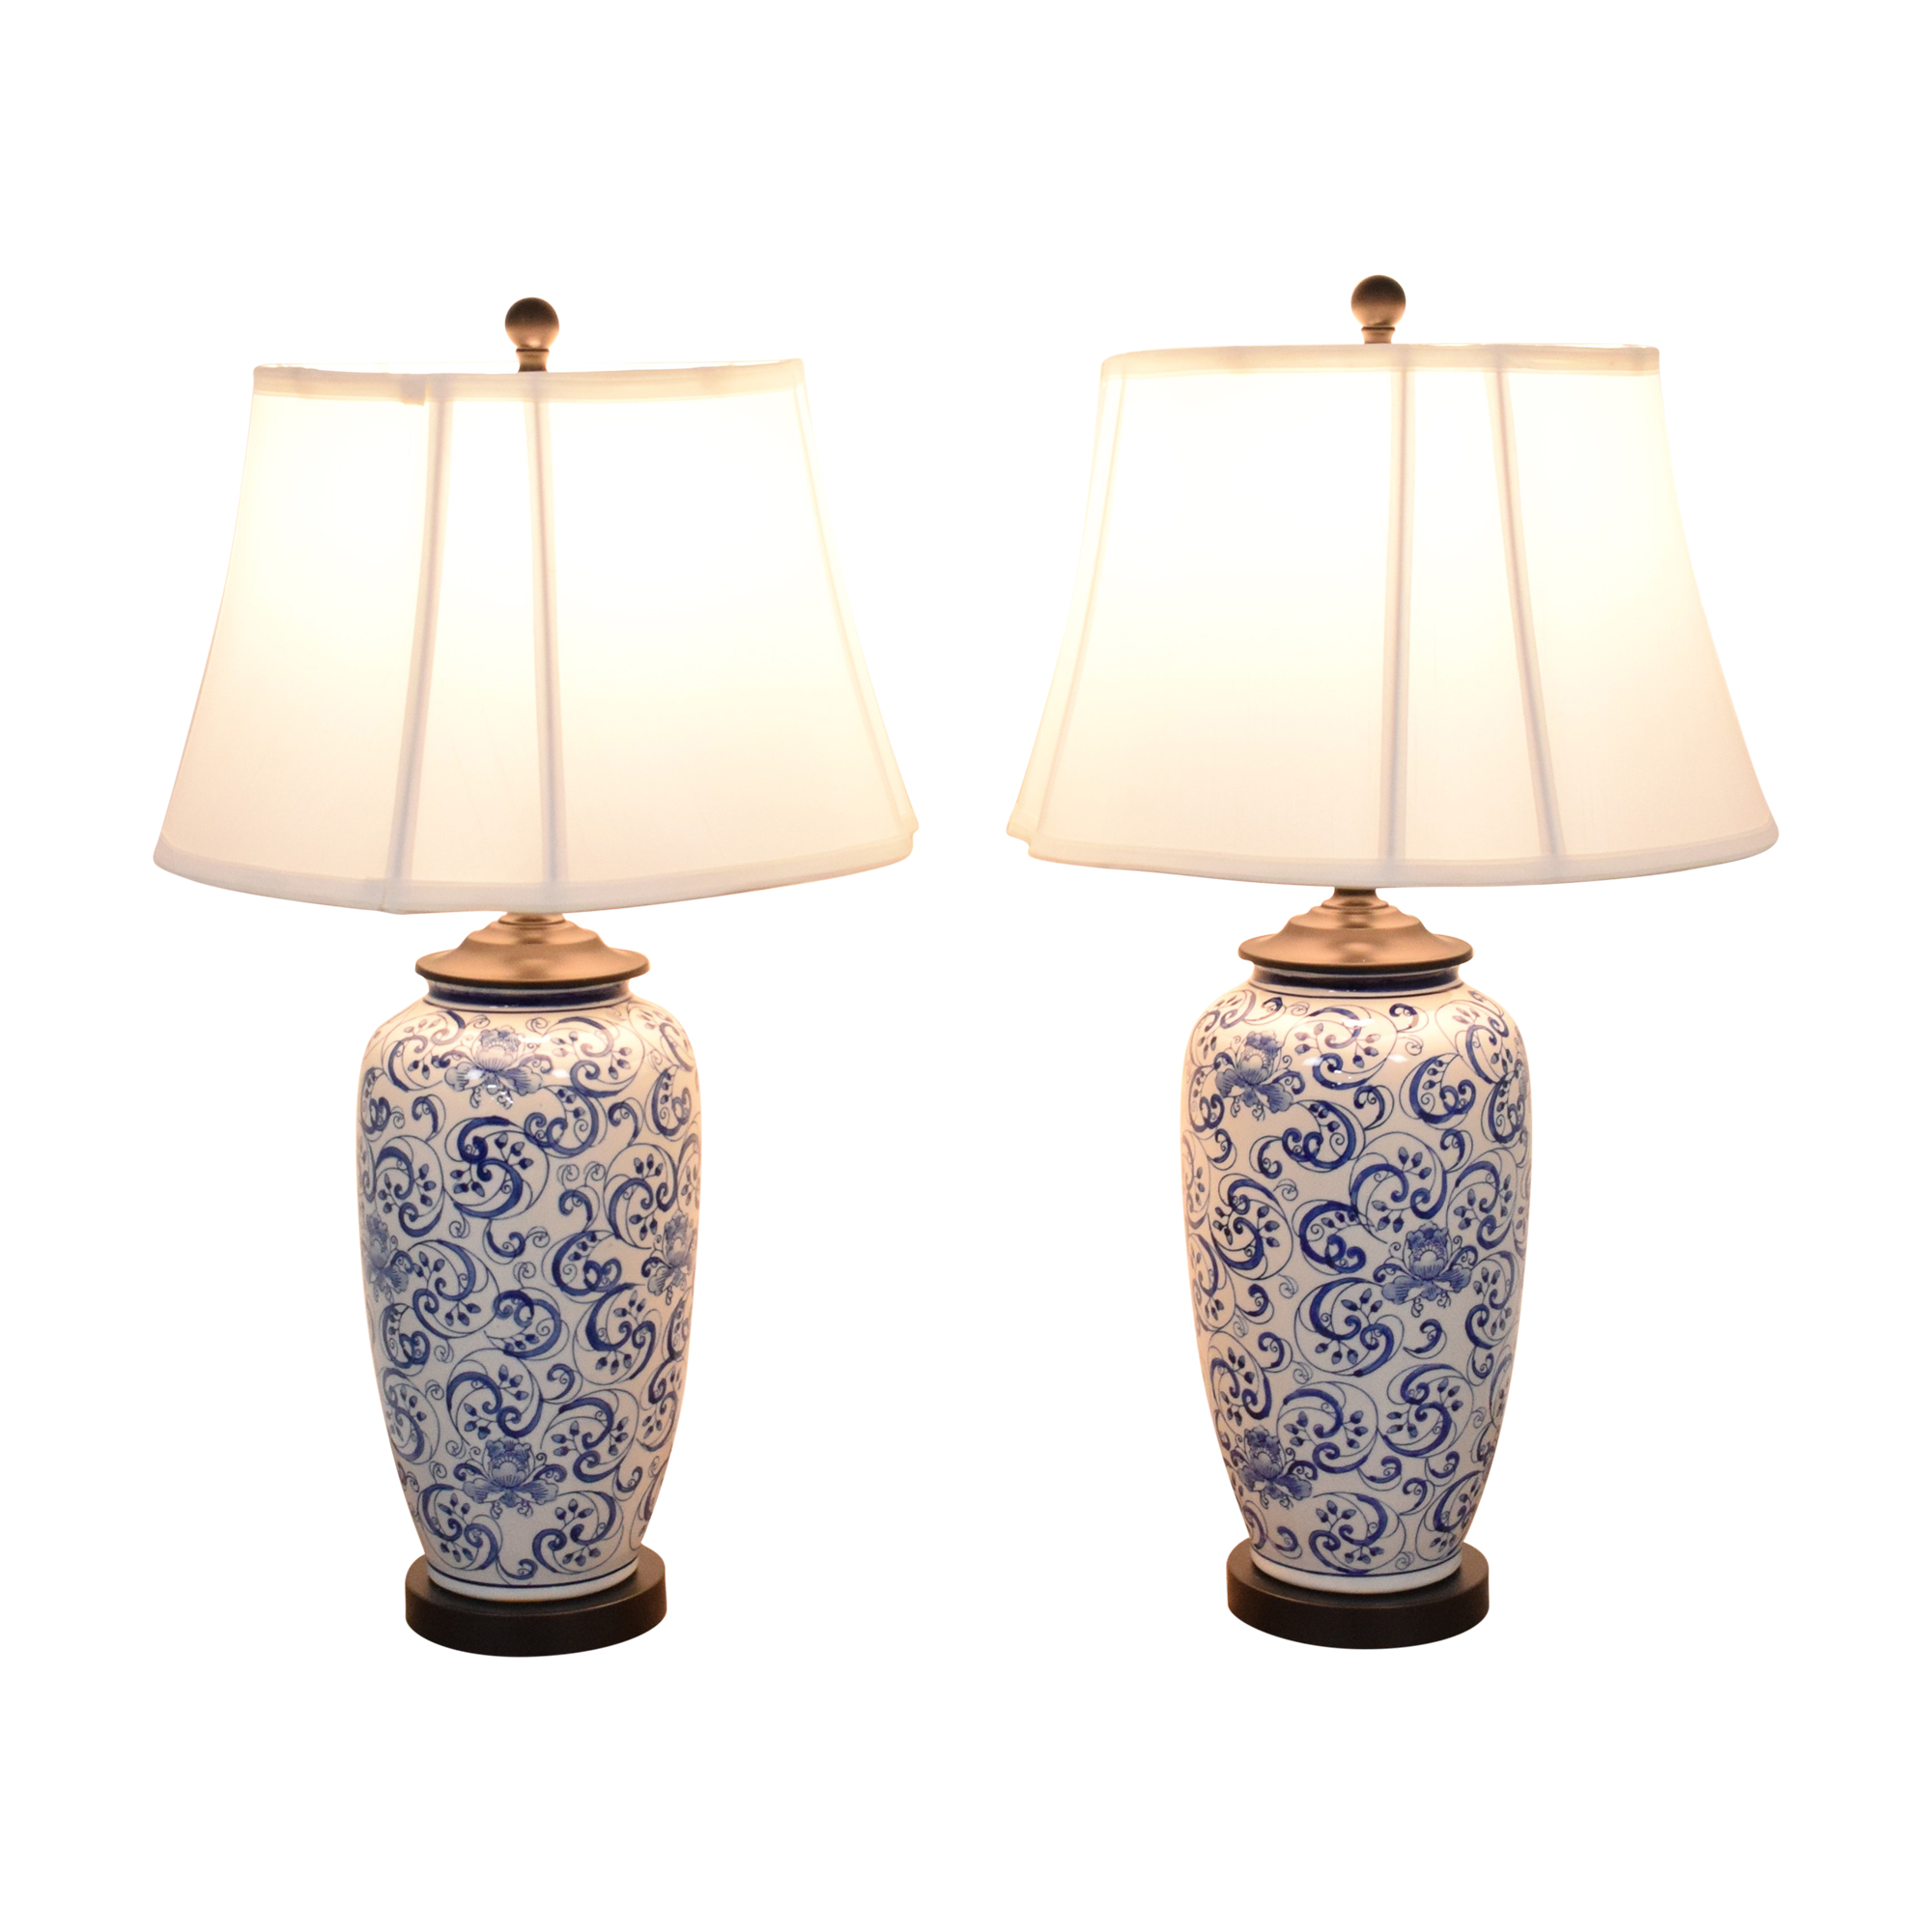 Decorative Table Lamps price